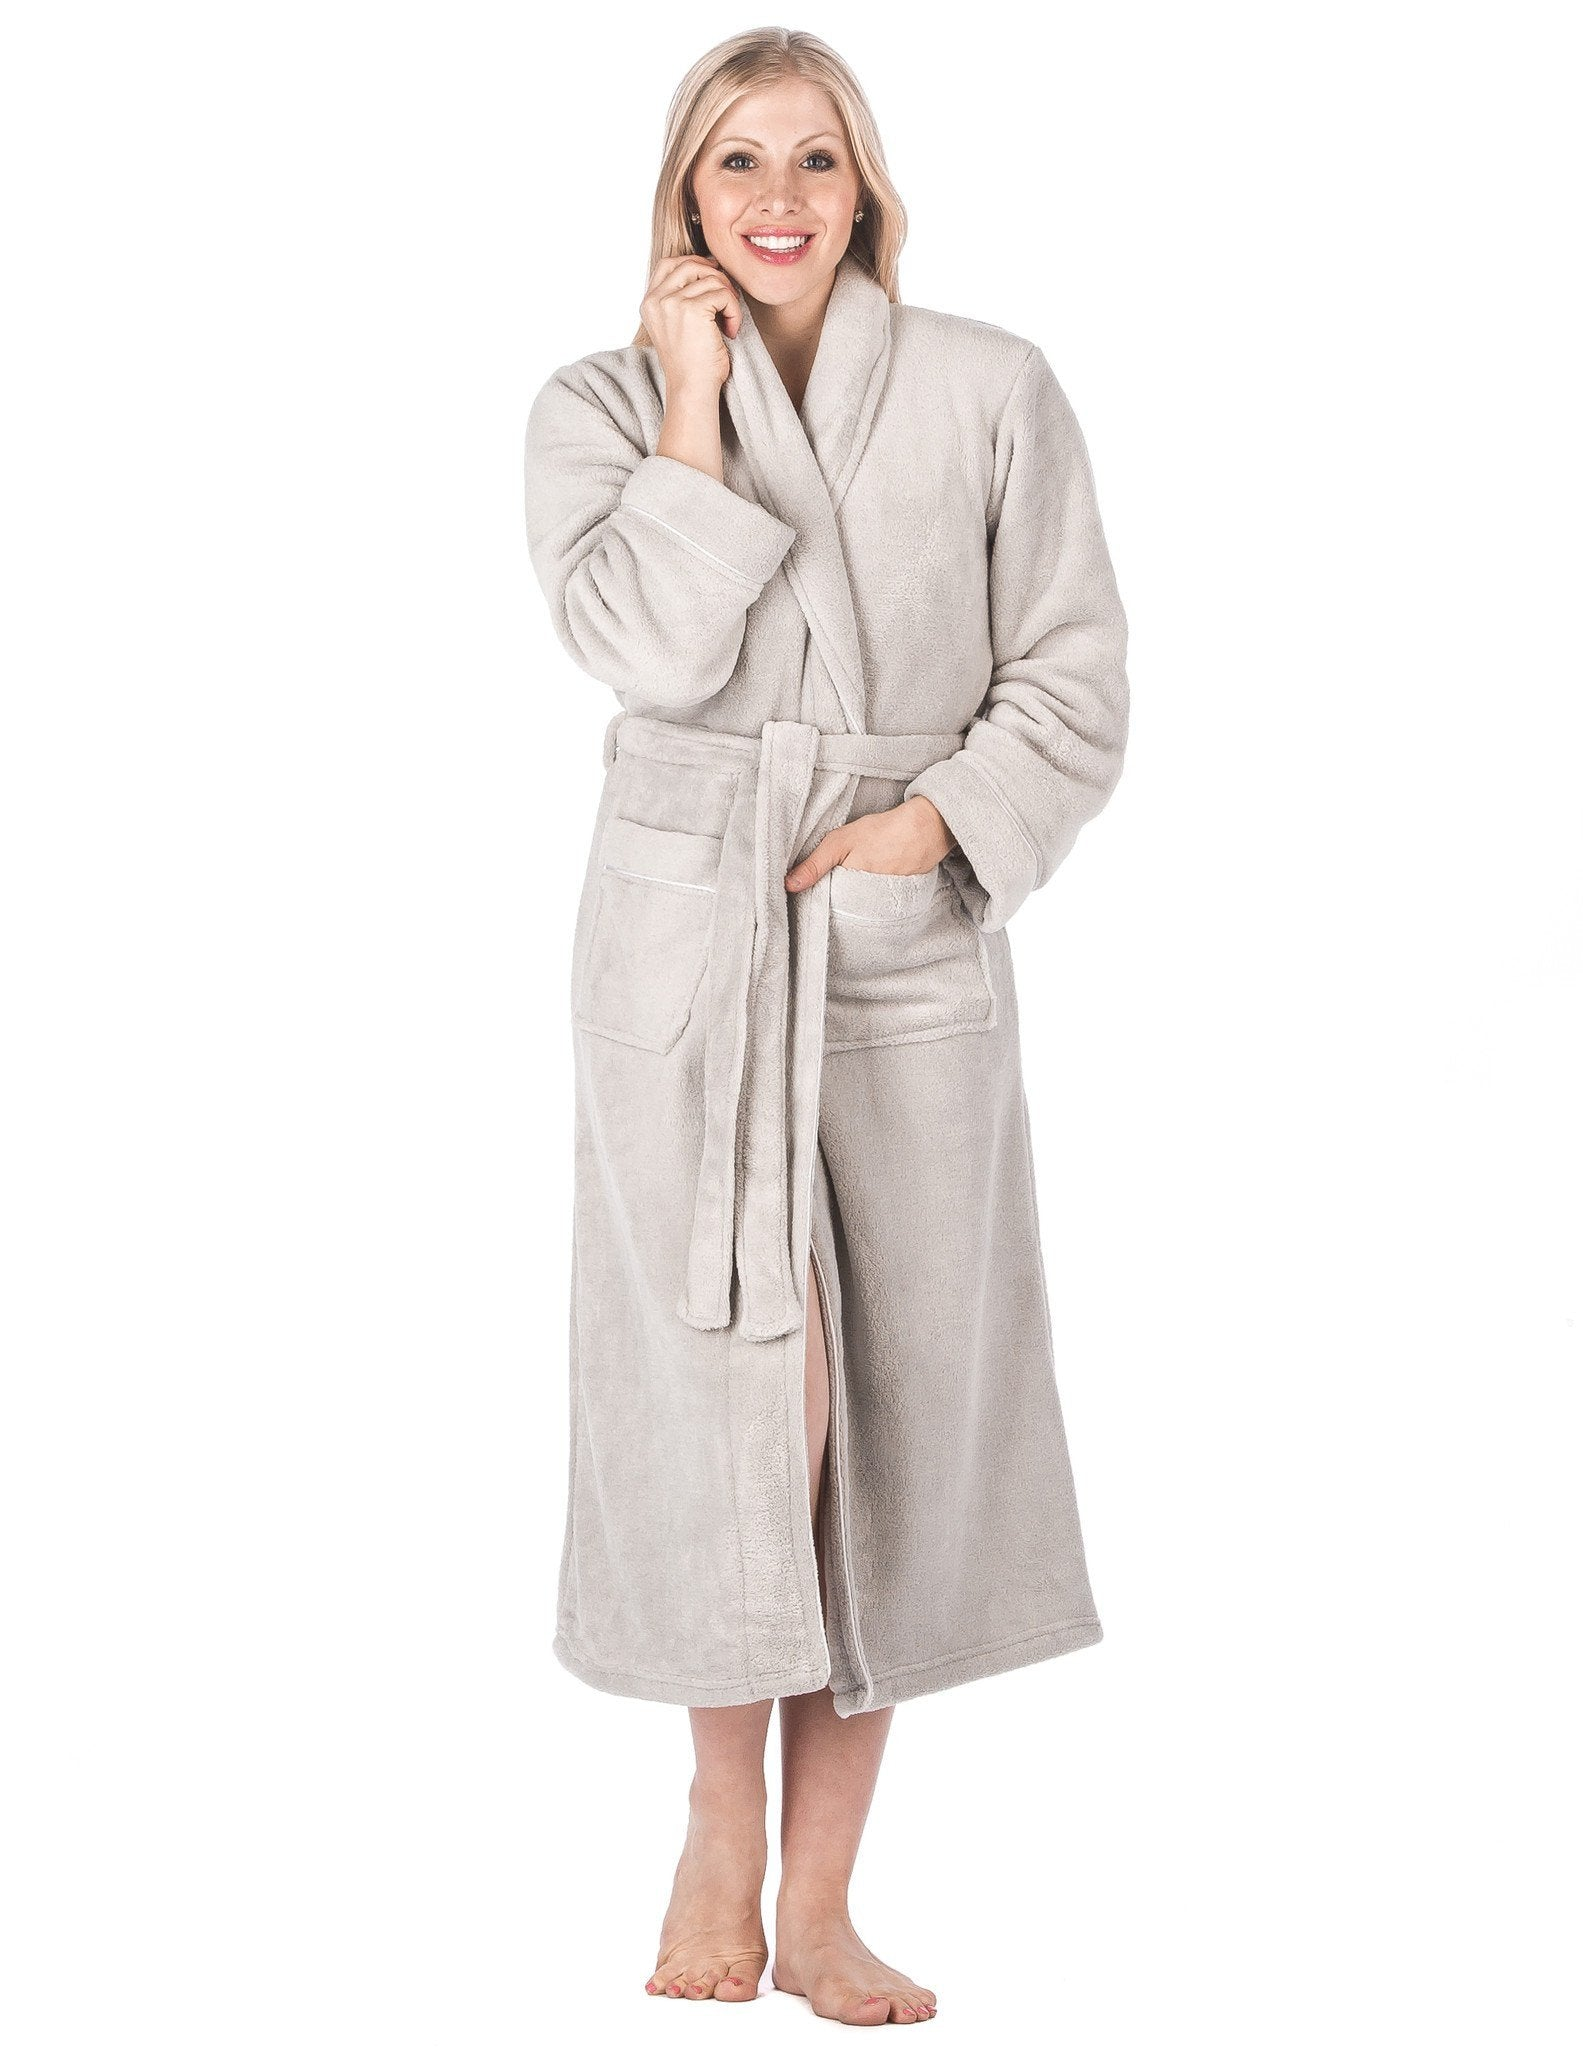 Women's Premium Coral Fleece Plush Spa/Bath Robe - Light Grey